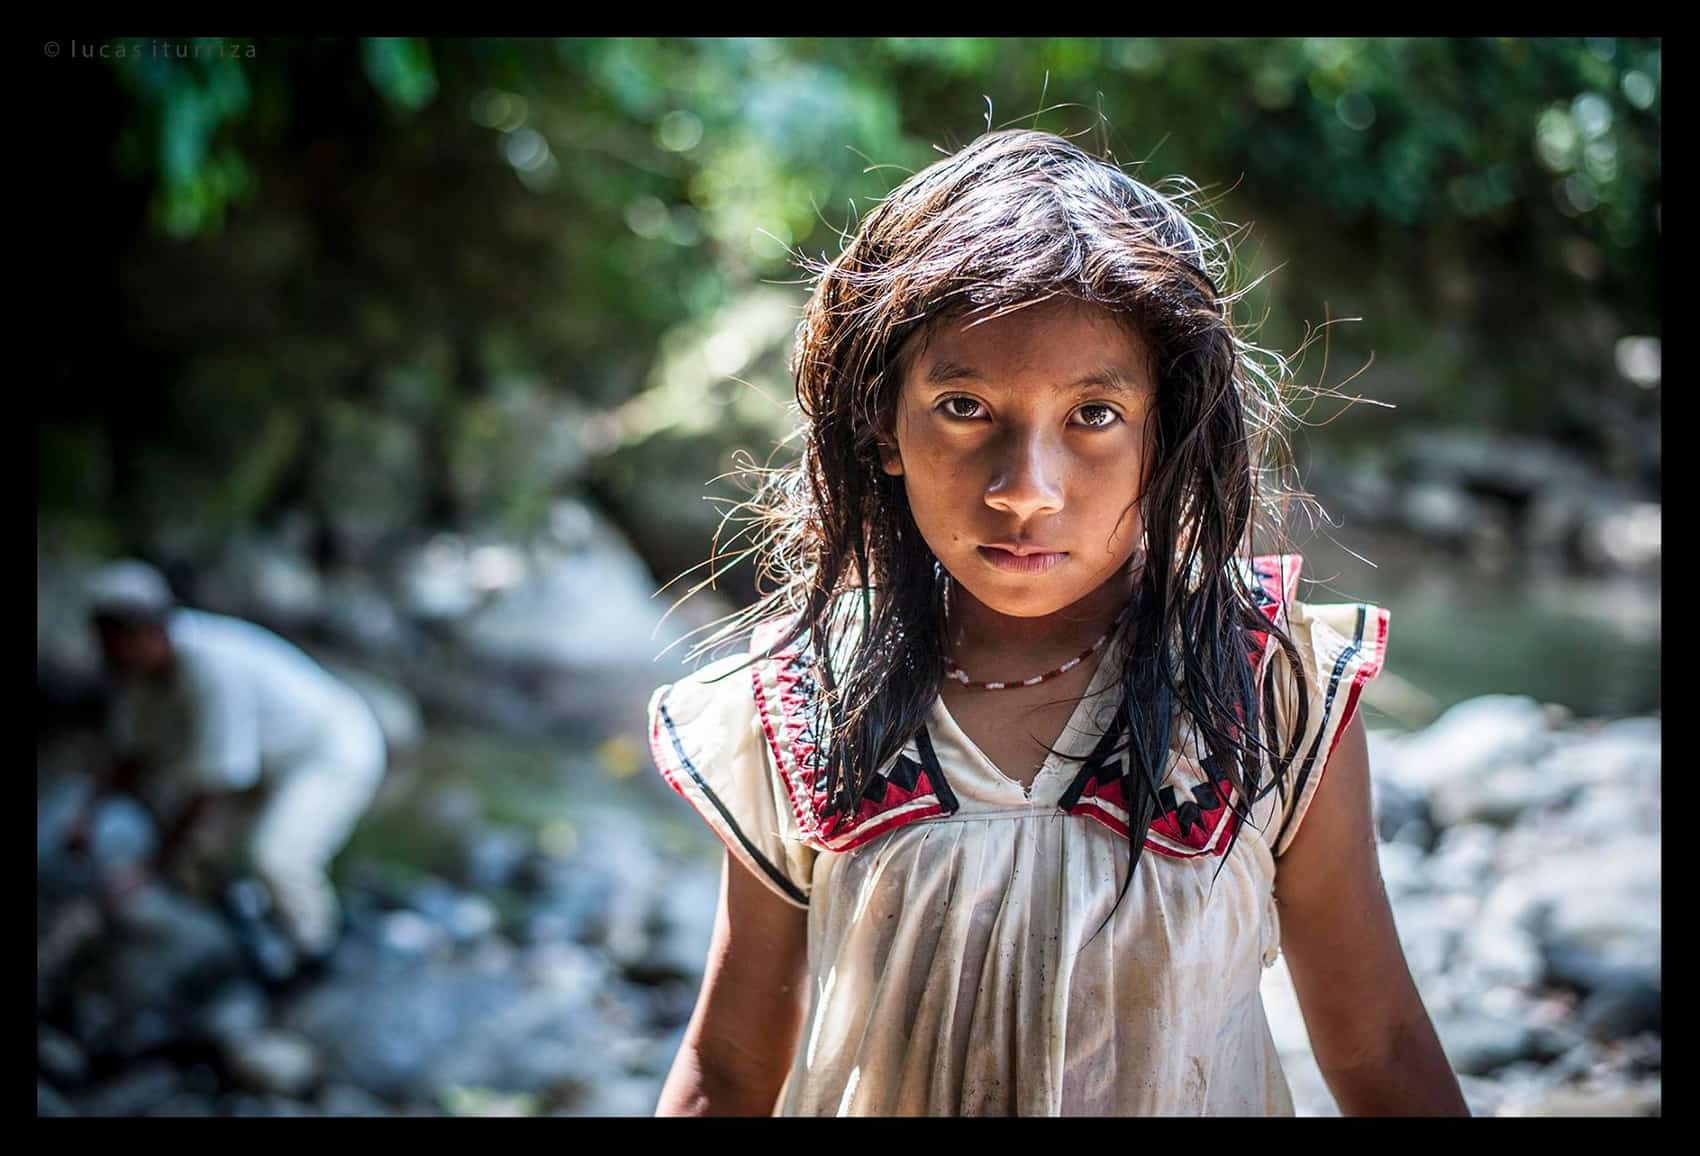 A portrait photo of a Costa Rican girl.